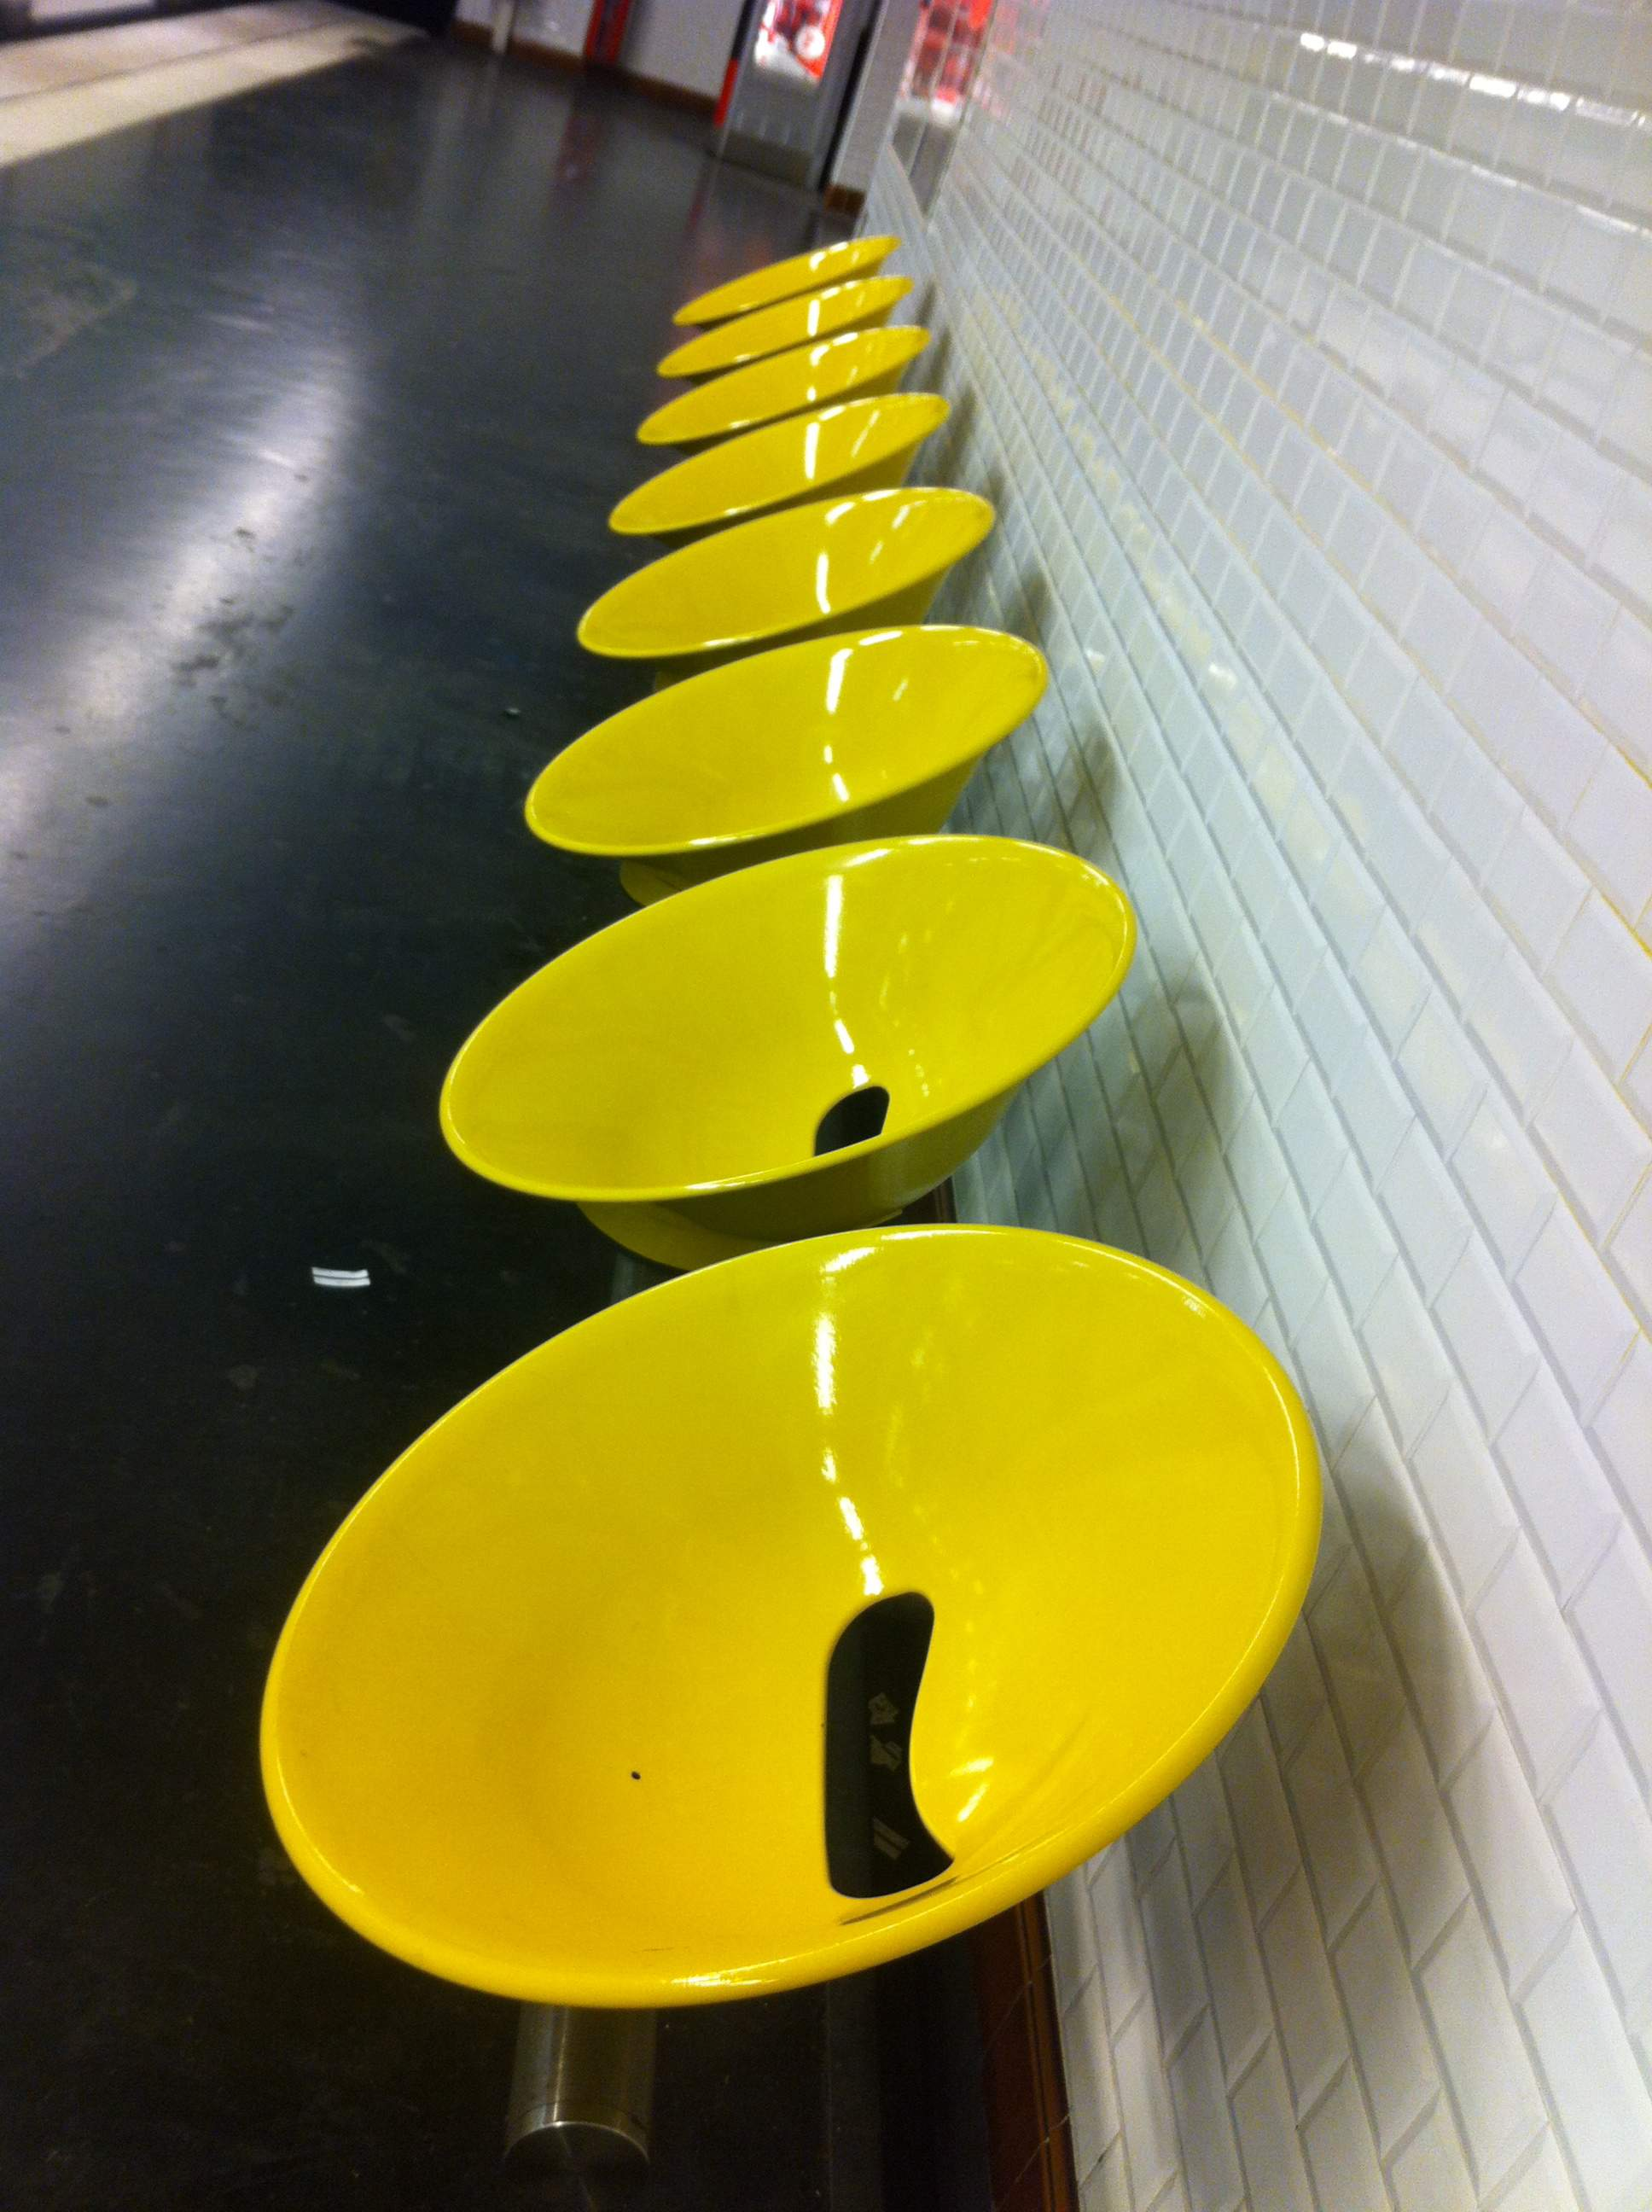 2012-08-06-YellowSeats.jpg